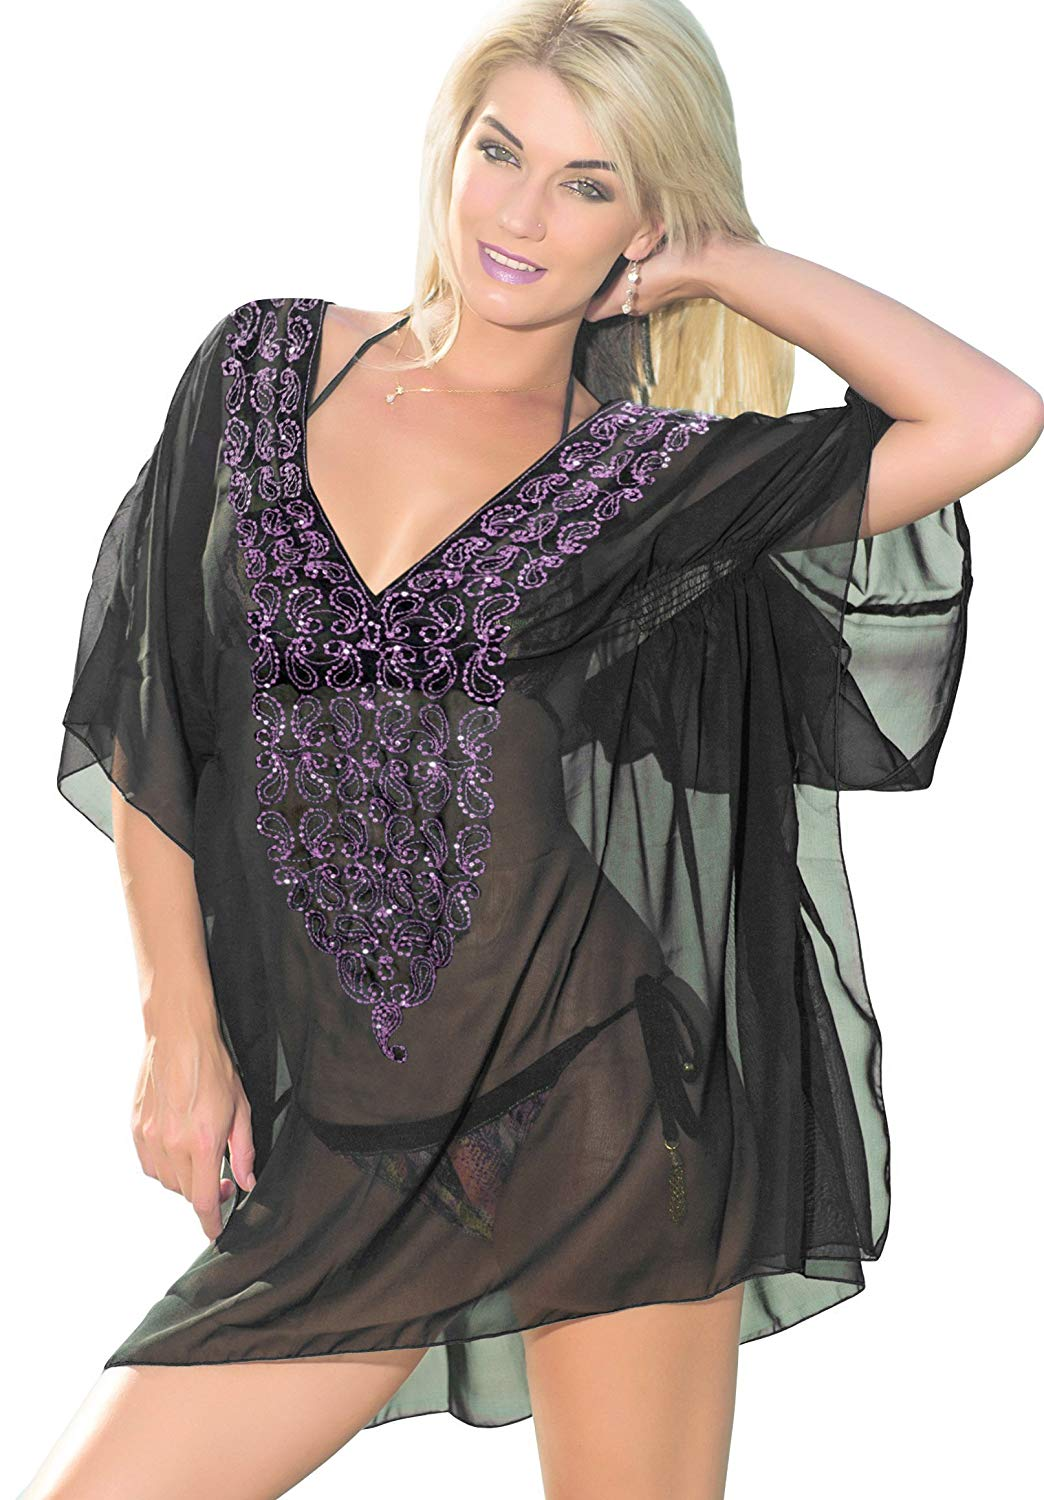 LA LEELA Bikini Swim Beach Swimsuit Cover up Women Caftan Dresses Embroidery